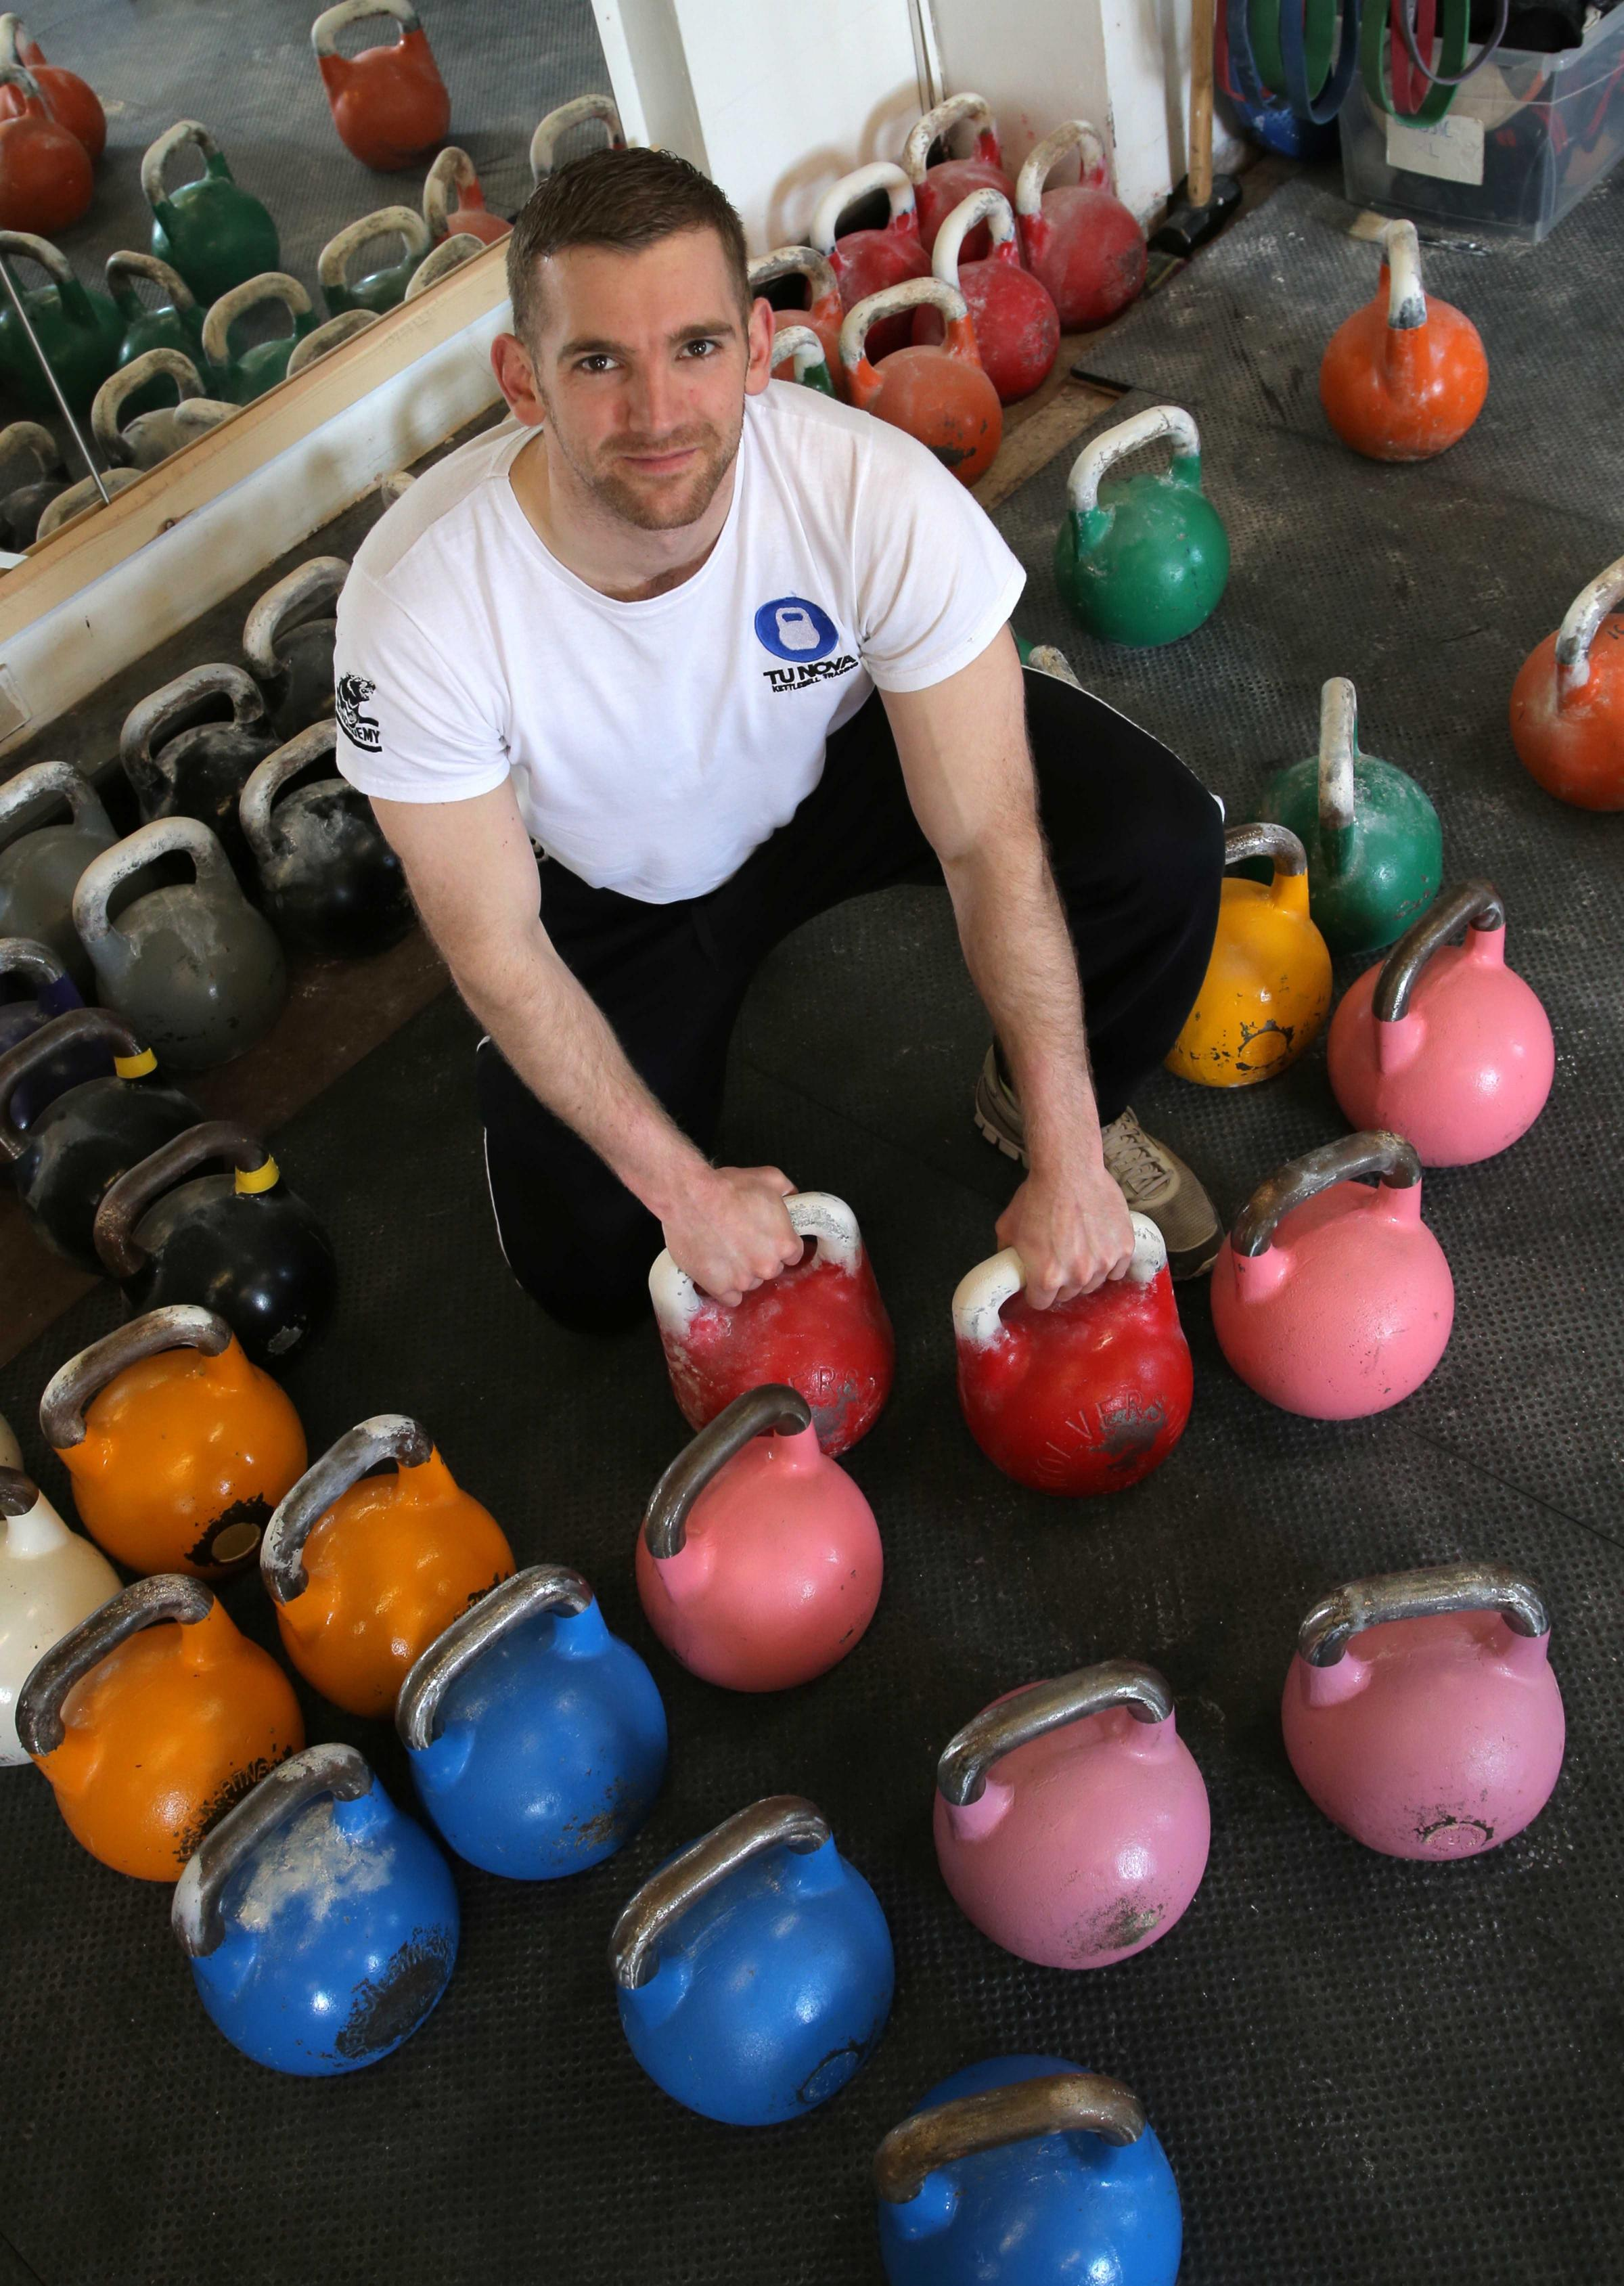 WEIGHTY CHALLENGE: Steve Gordon, from Darlington, is taking part in an international kettlebell contest